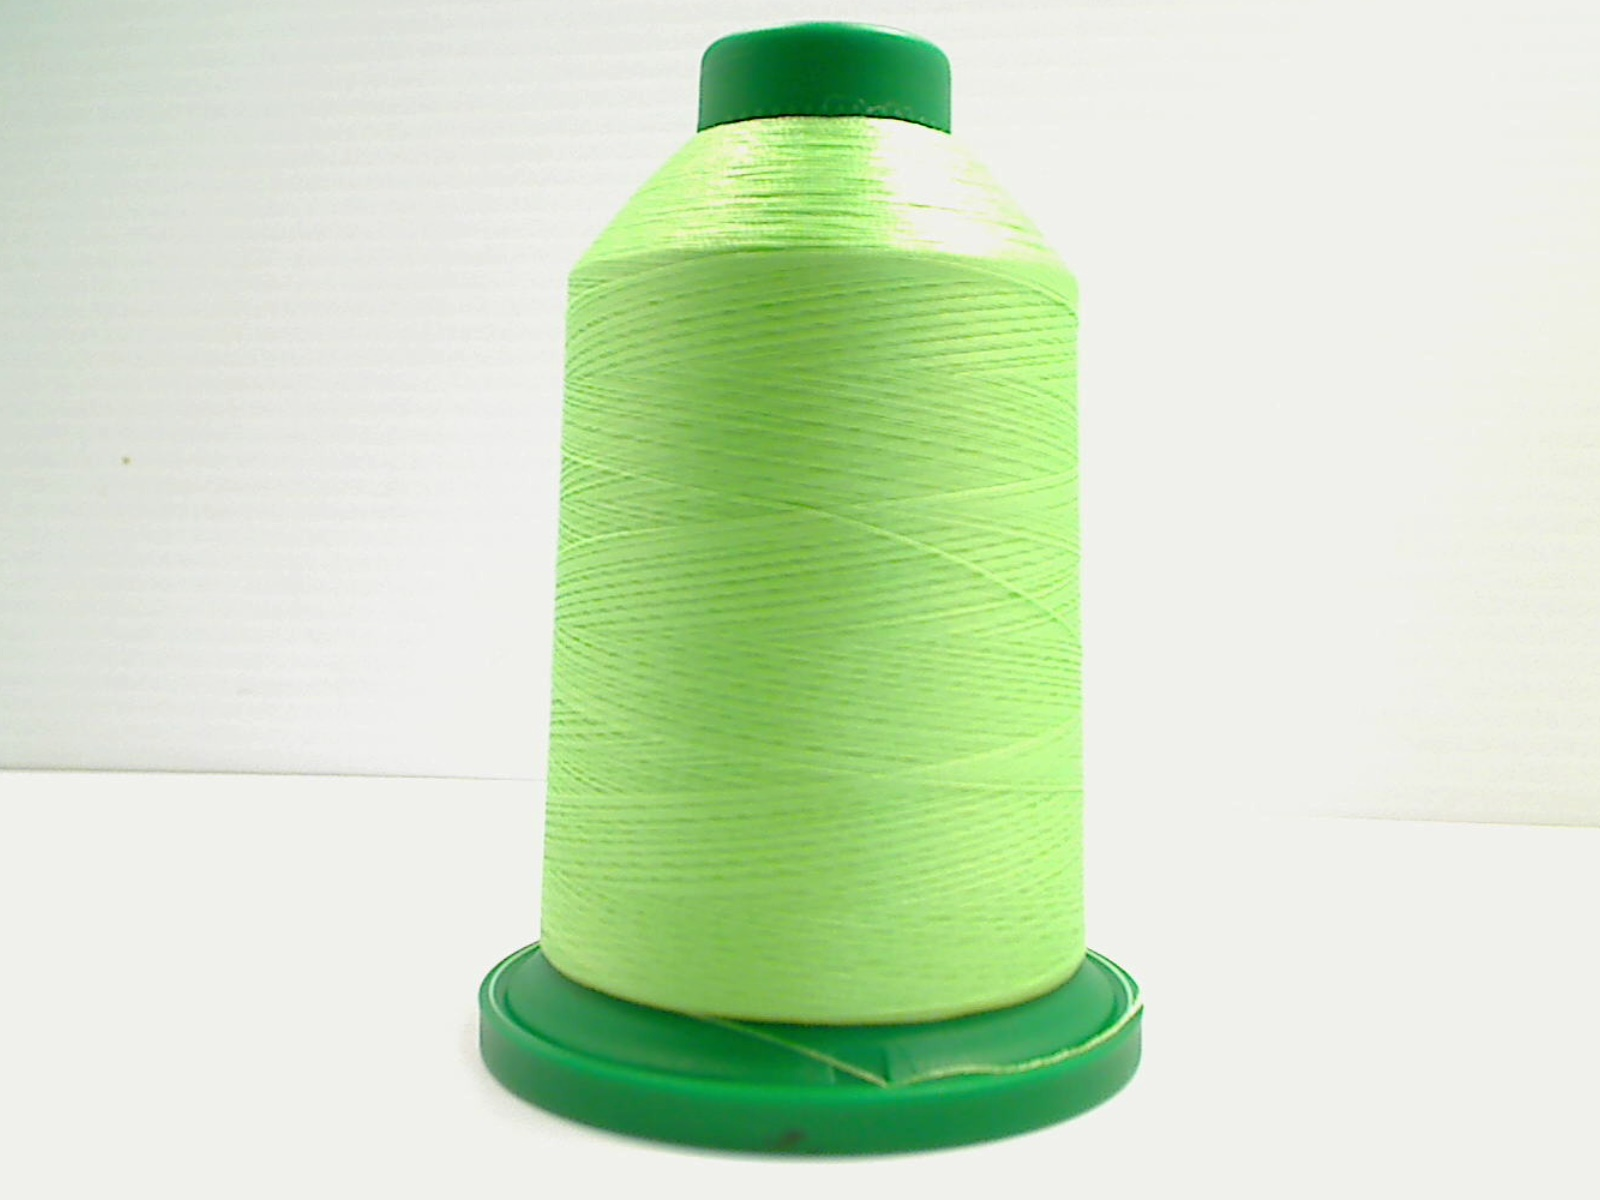 Isacord Embroidery Thread, 5000M, 40W Polyester Thread, 5830